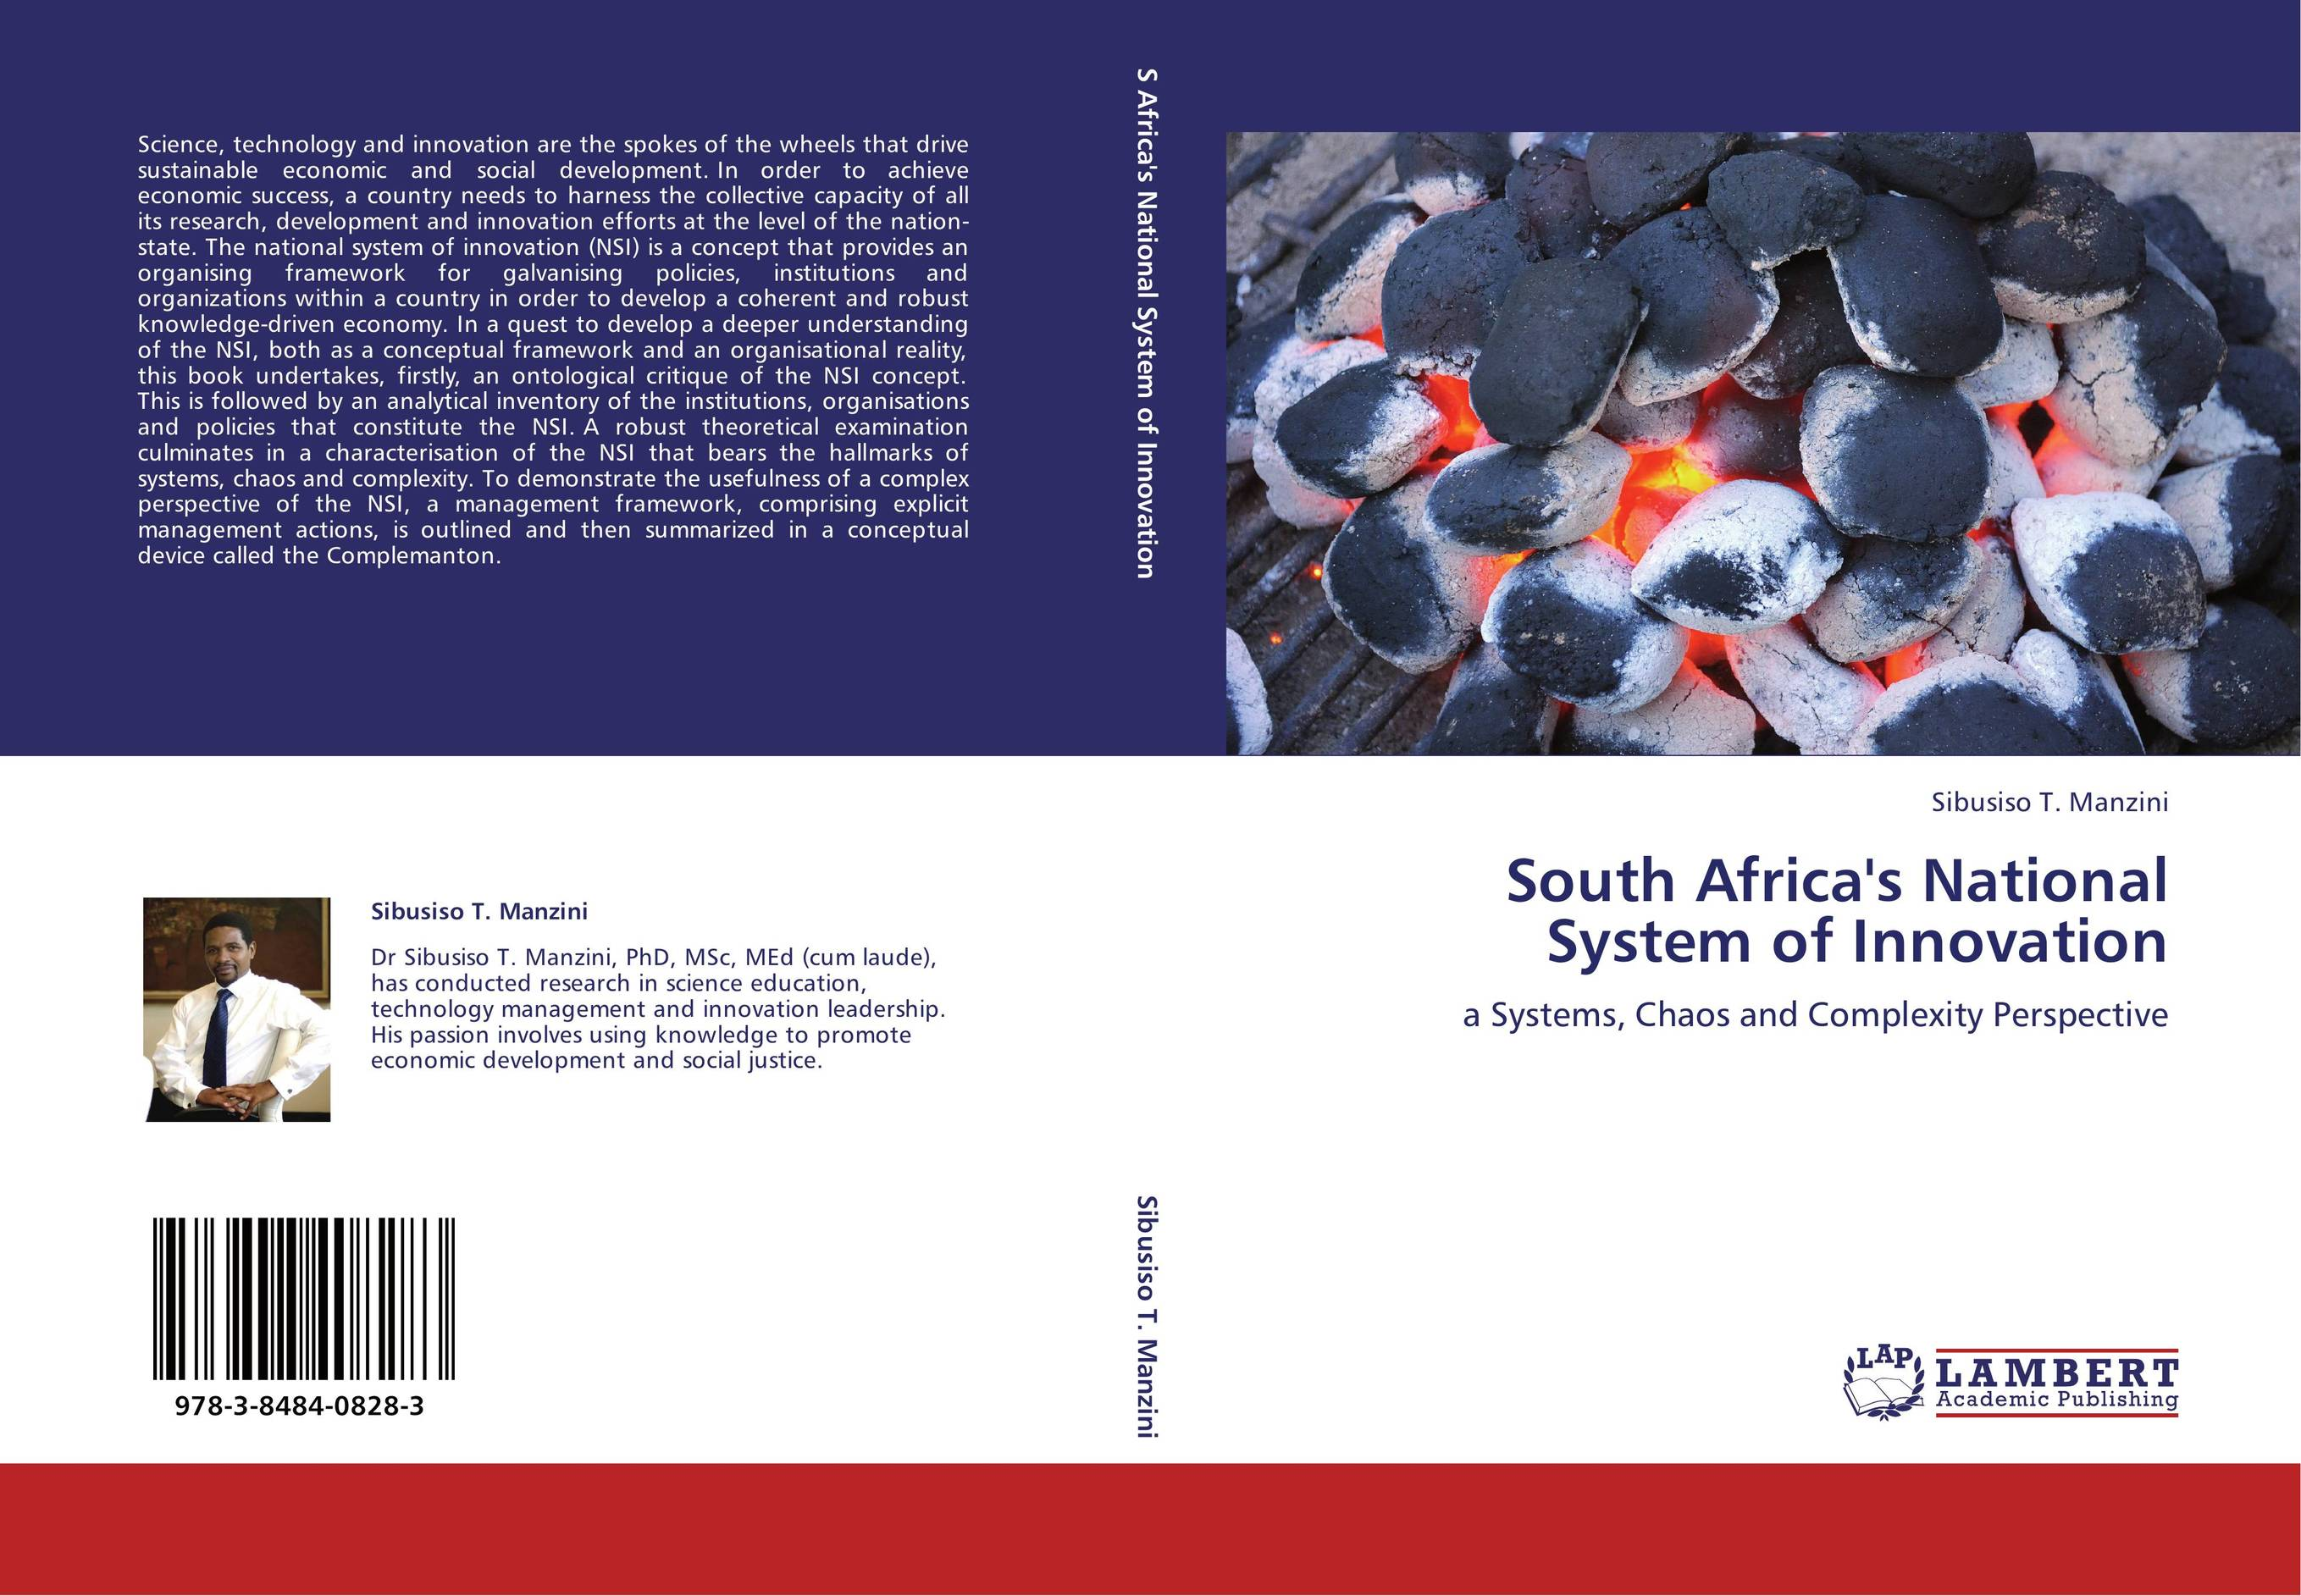 South Africa's National System of Innovation affair of state an